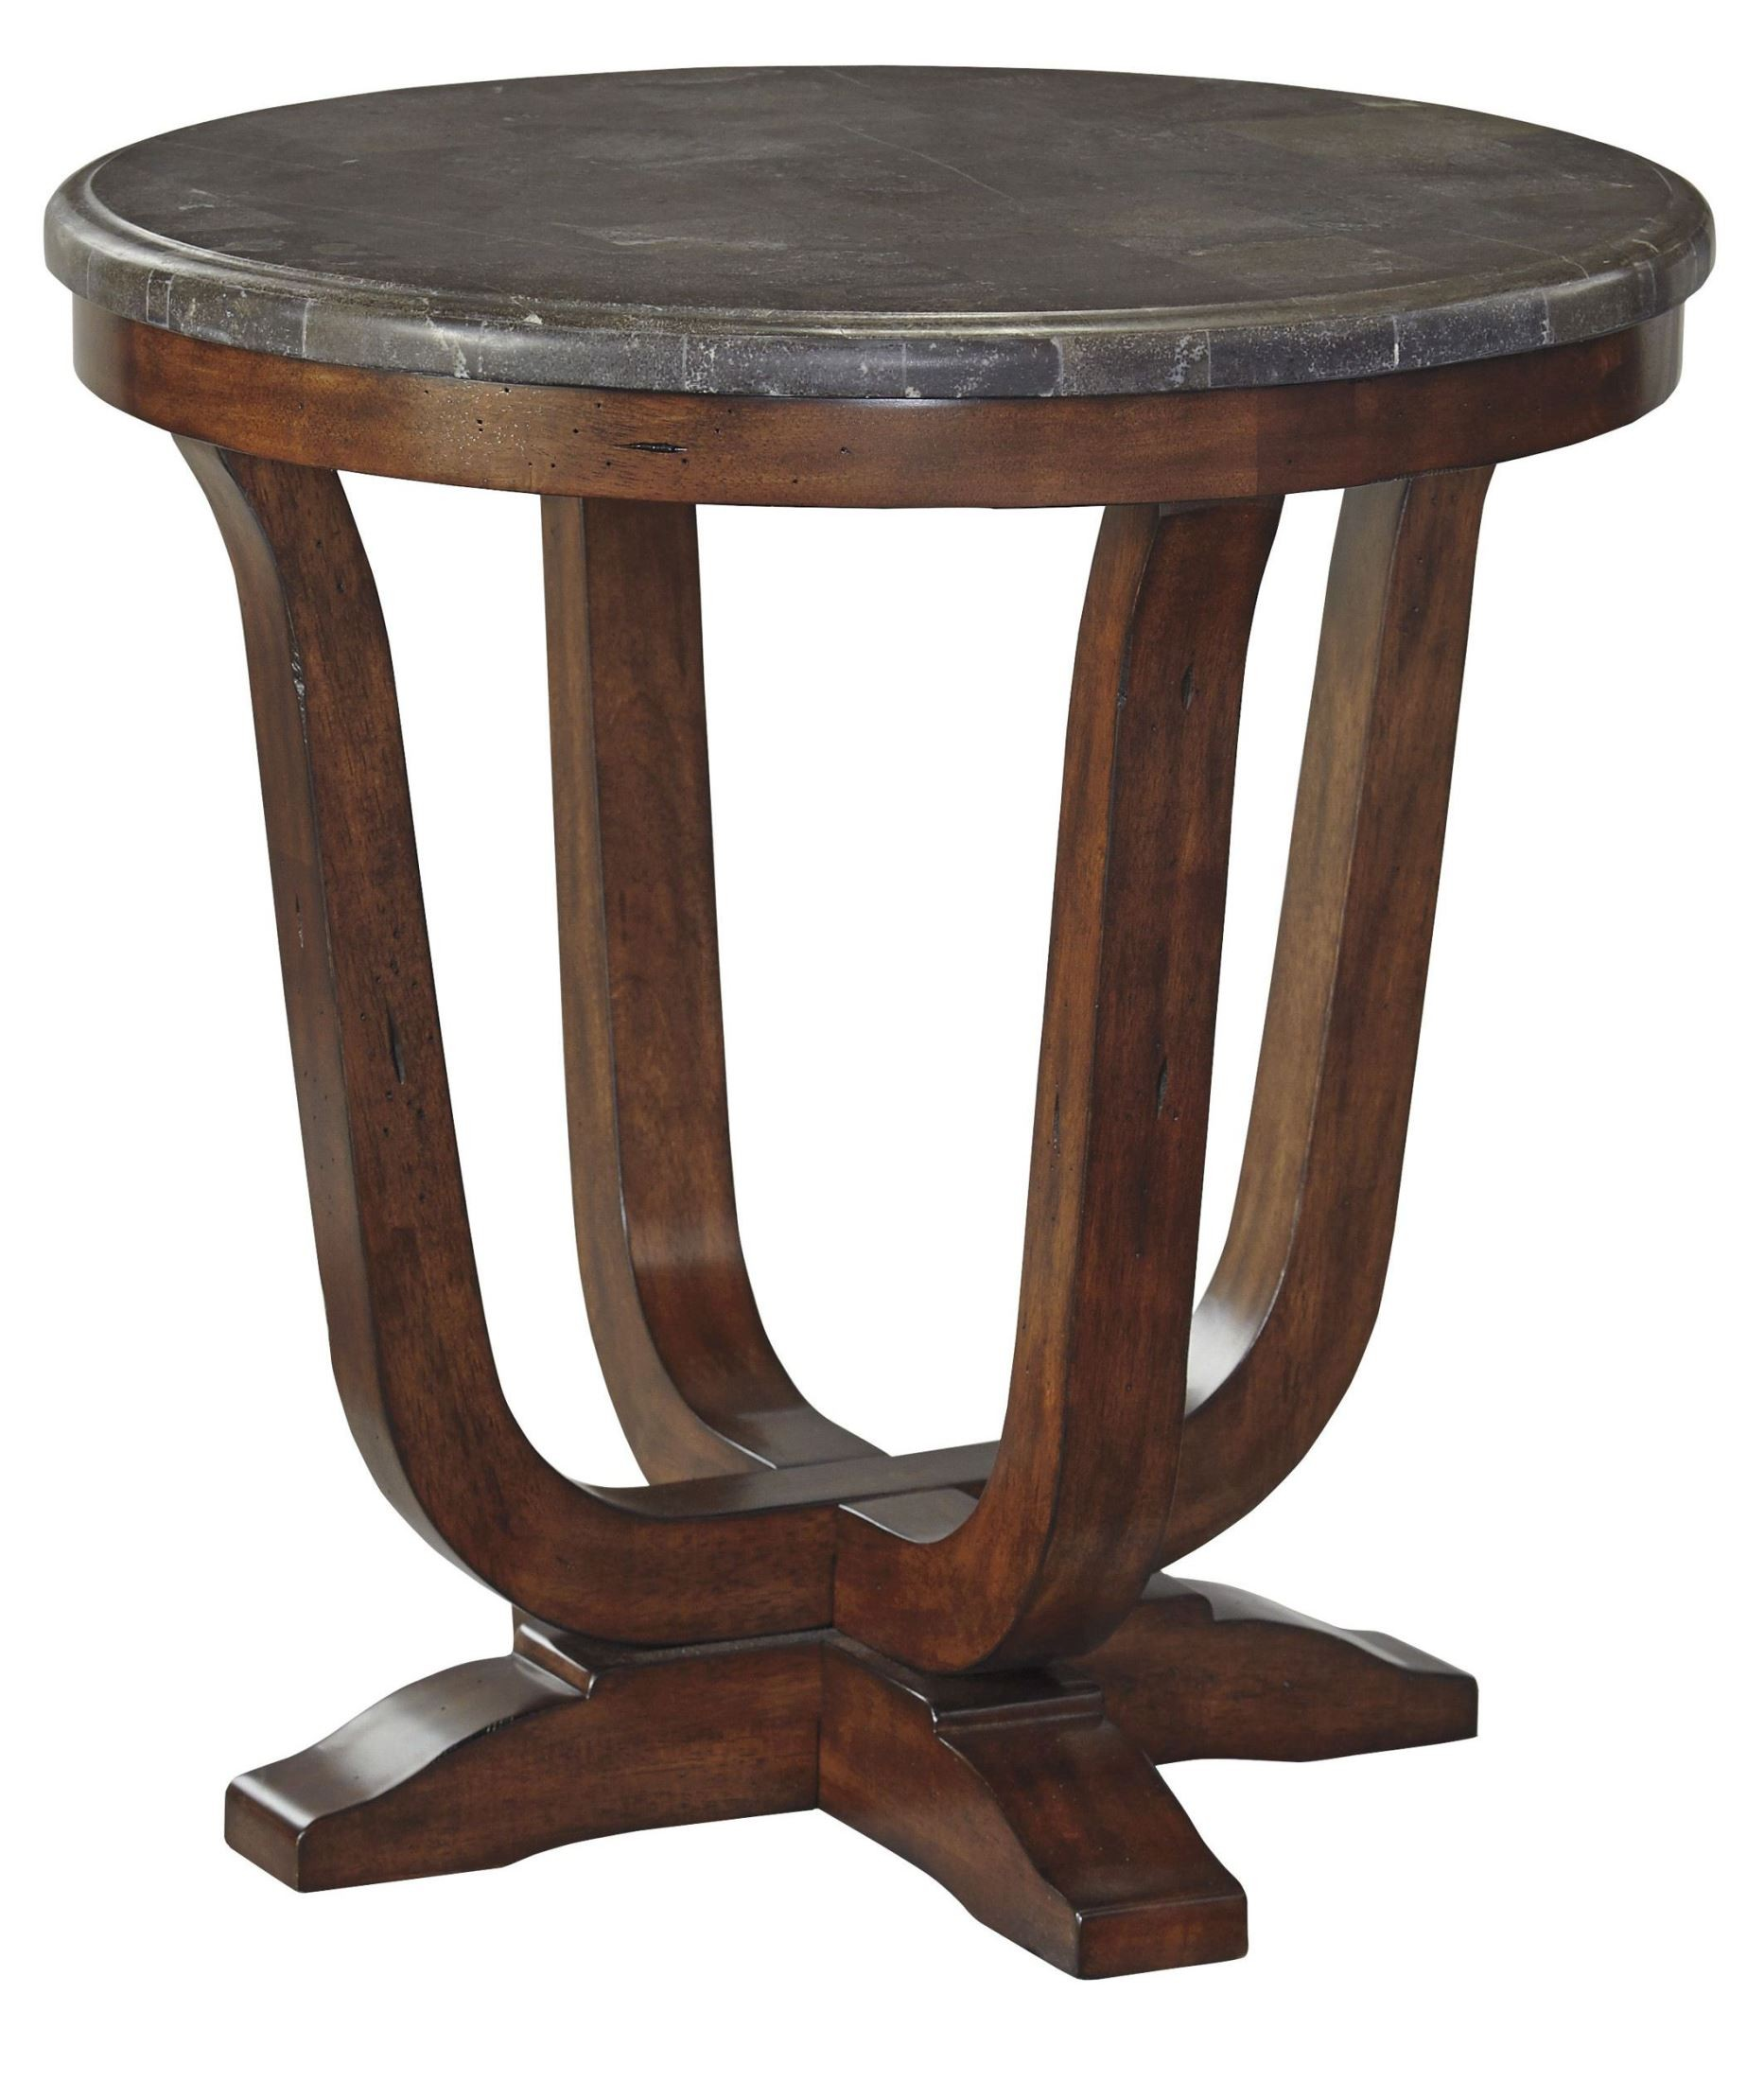 Balinder Medium Brown Round End Table From Ashley T908 6